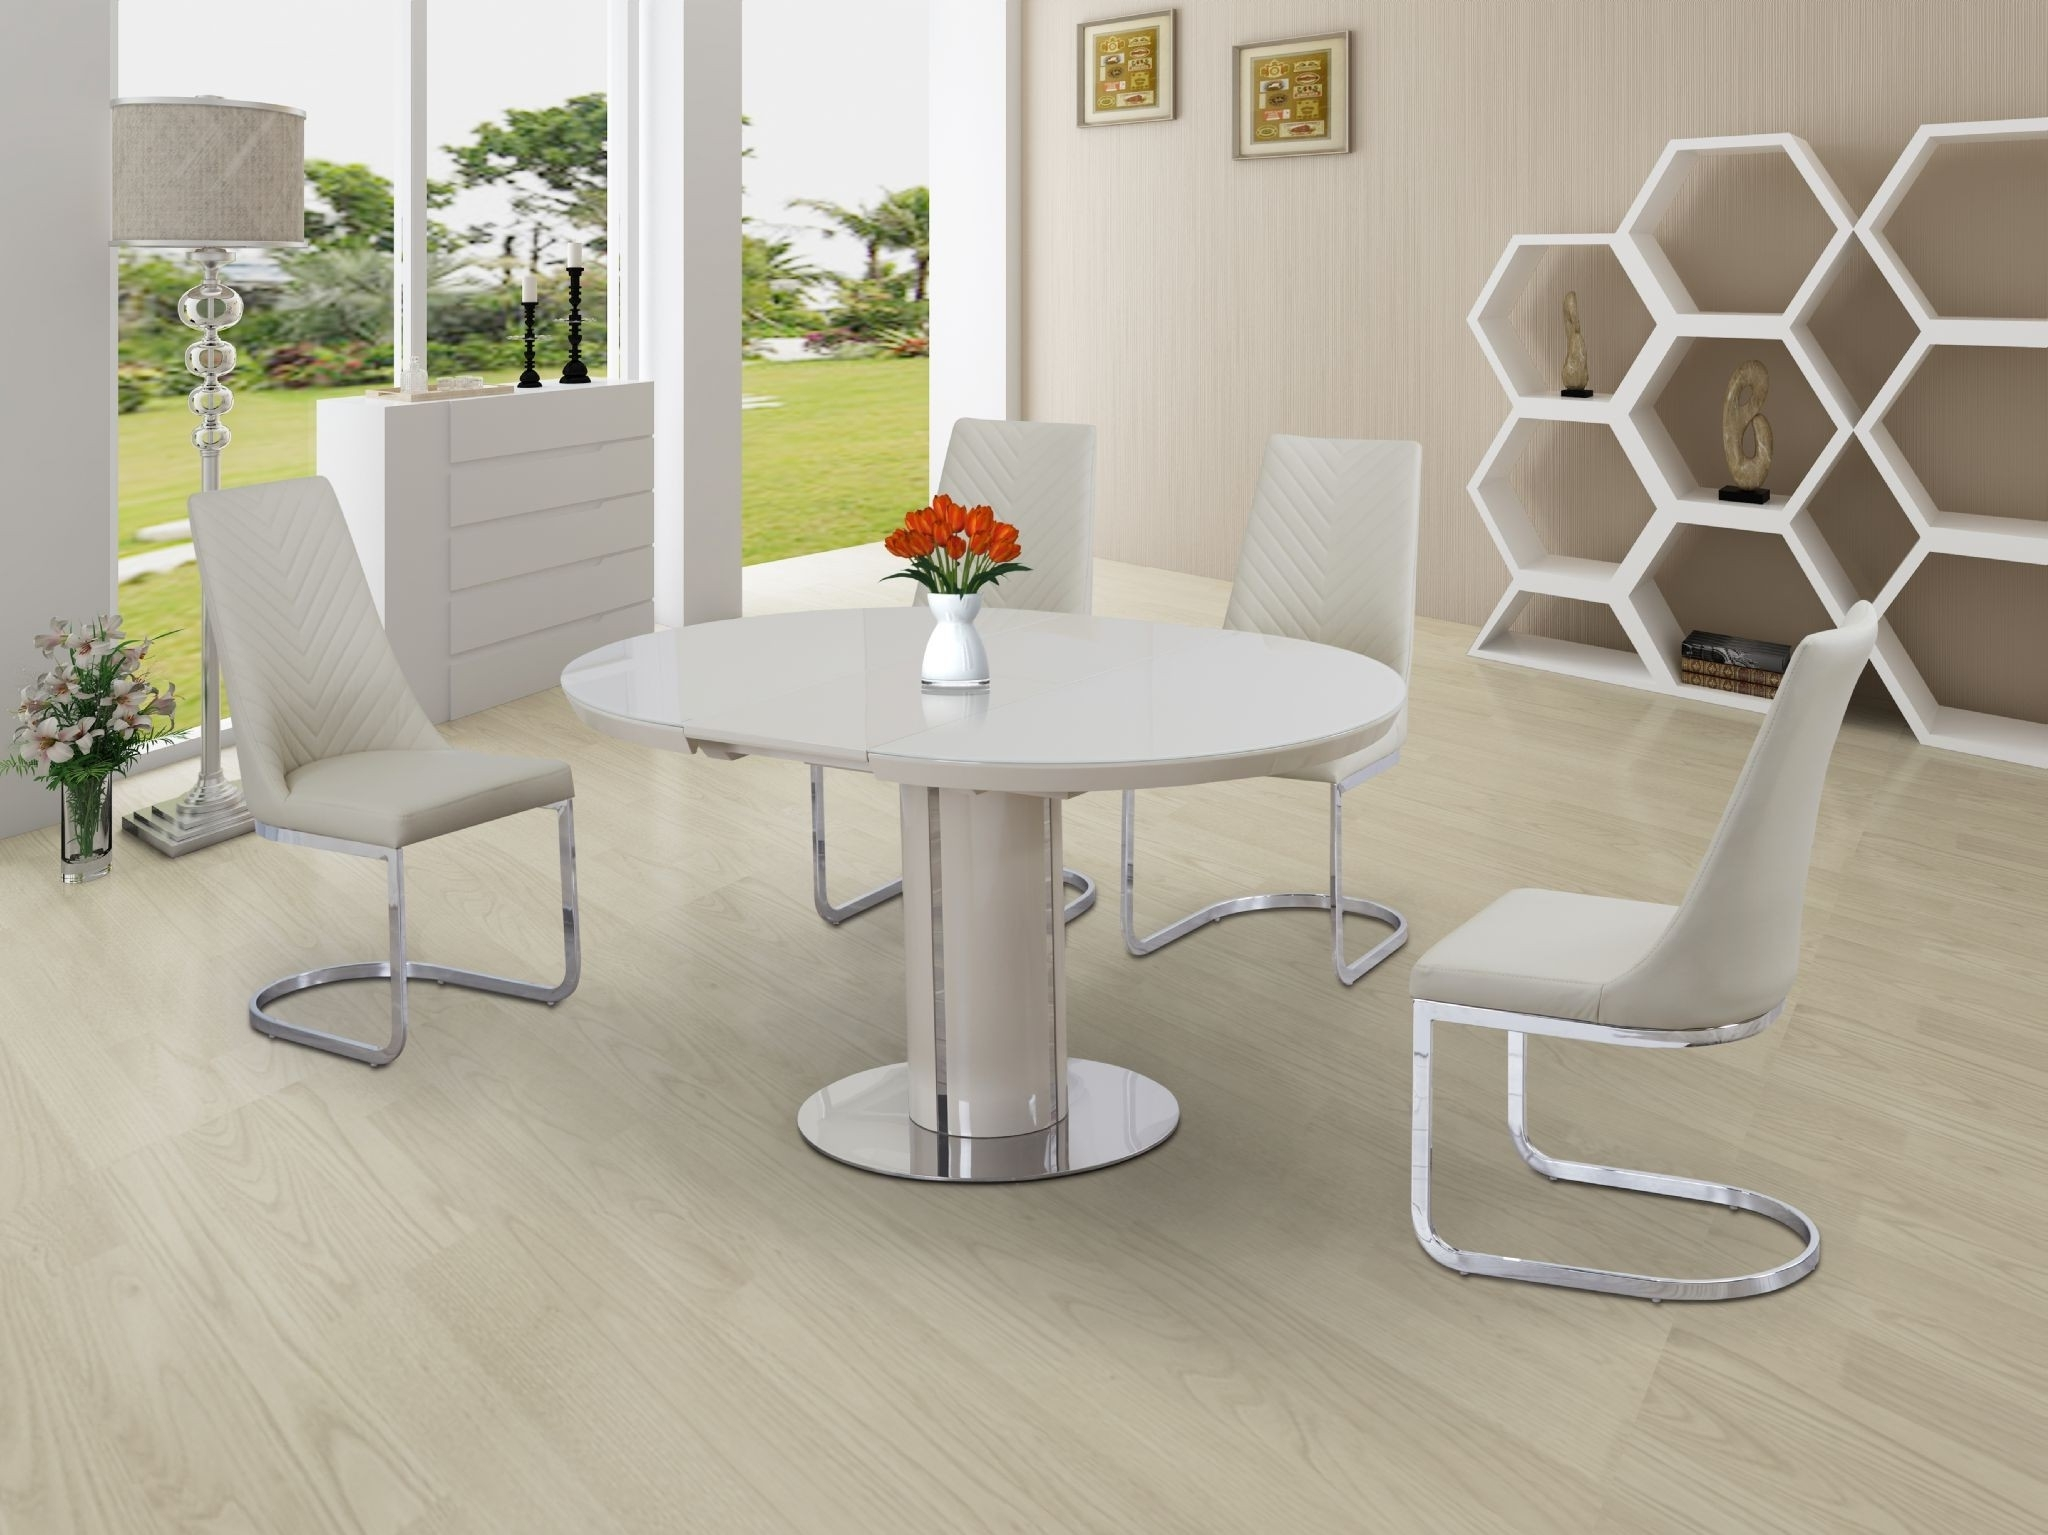 White High Gloss Dining Tables With Fashionable Buy Annular Cream High Gloss Extending Dining Table (View 24 of 25)